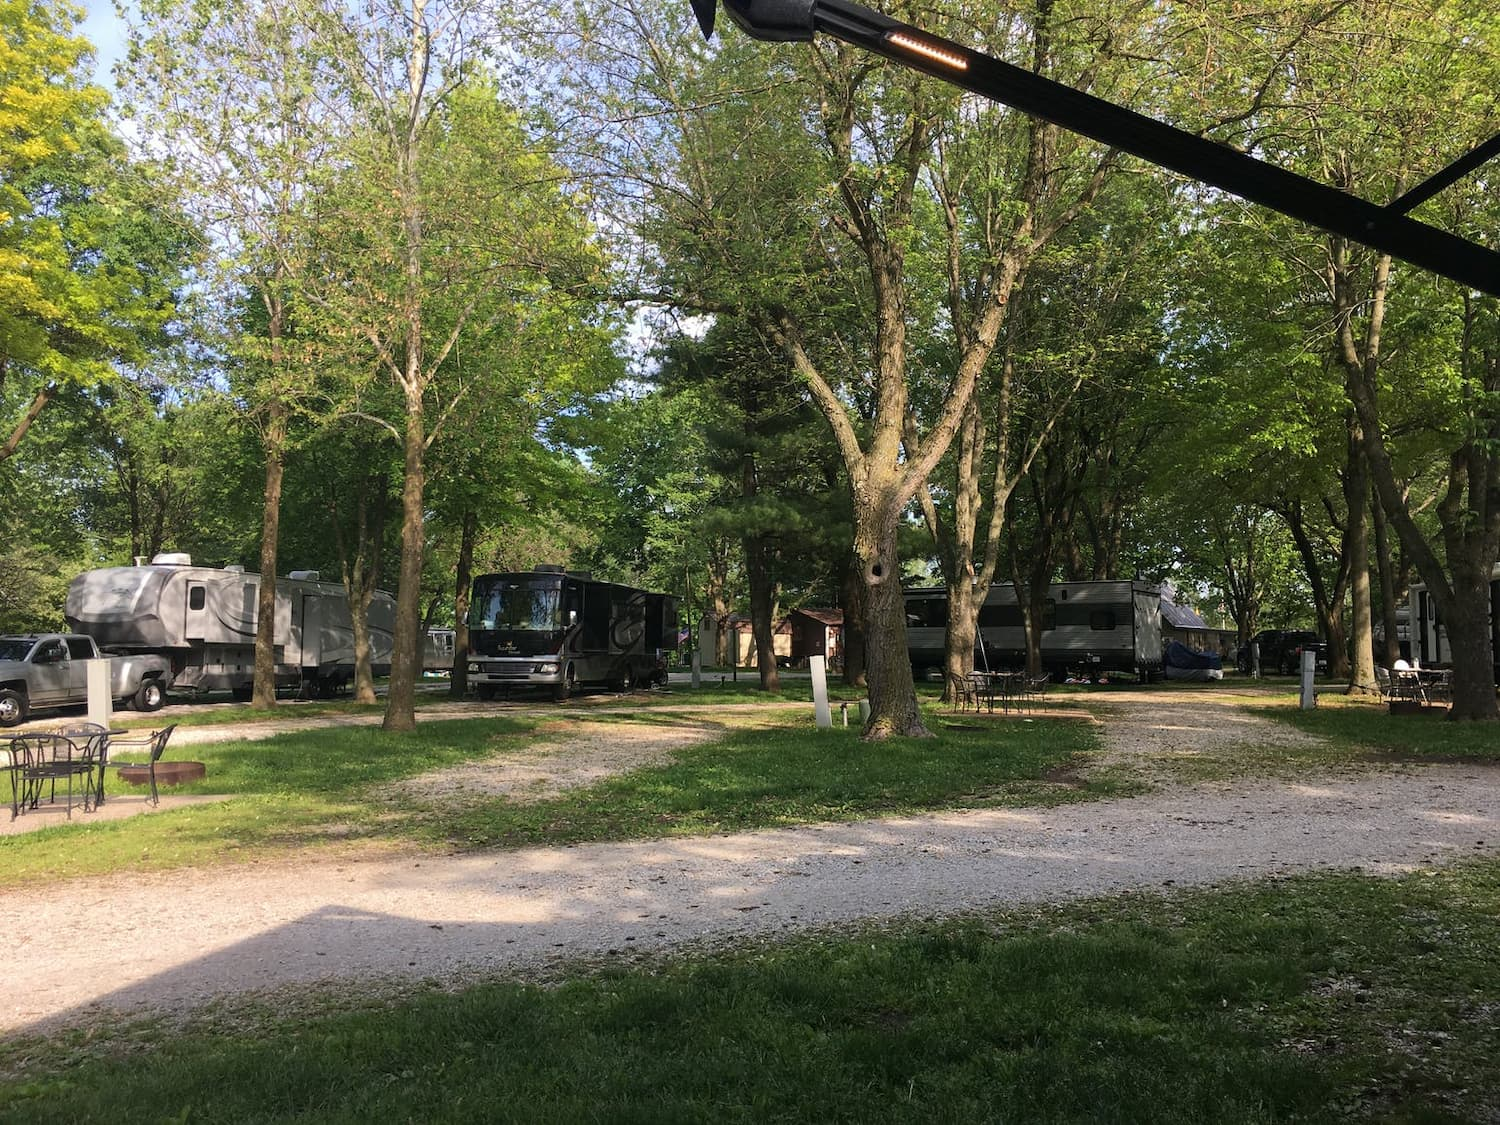 row of RVs parked in wooded campground